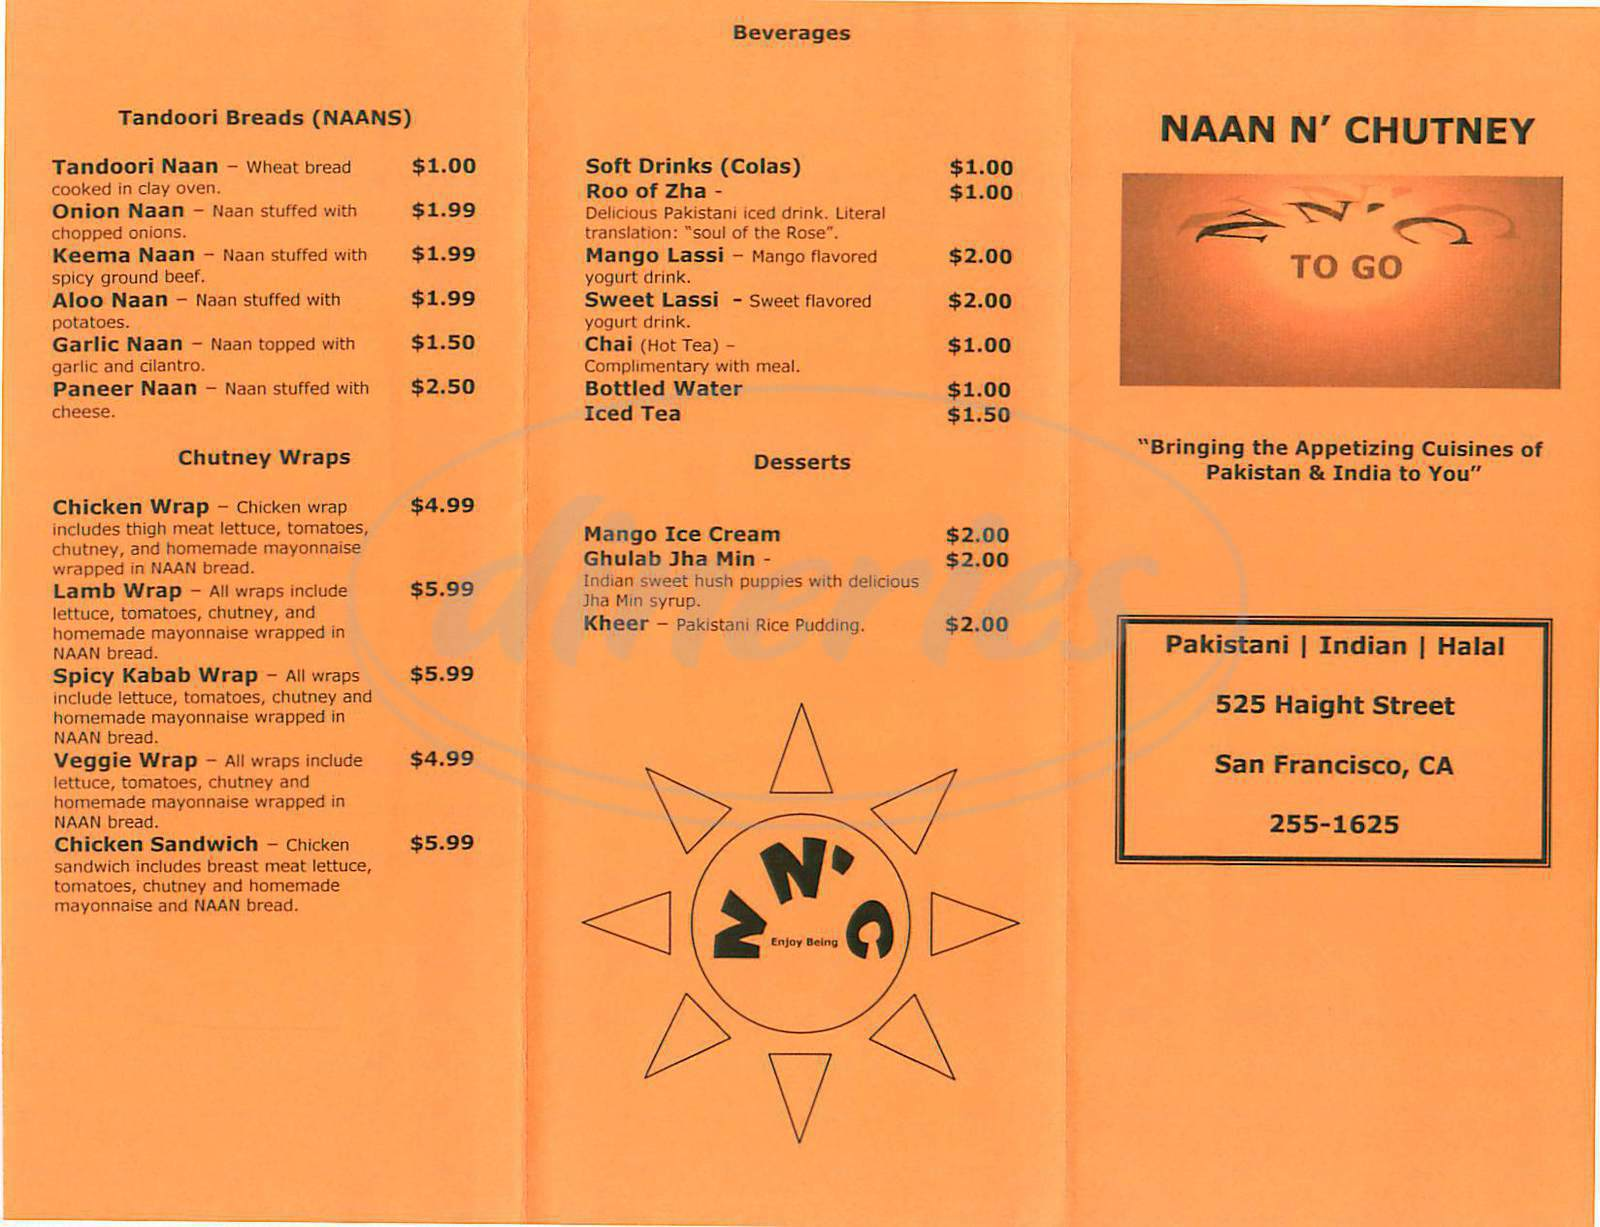 menu for Naan N Chutney